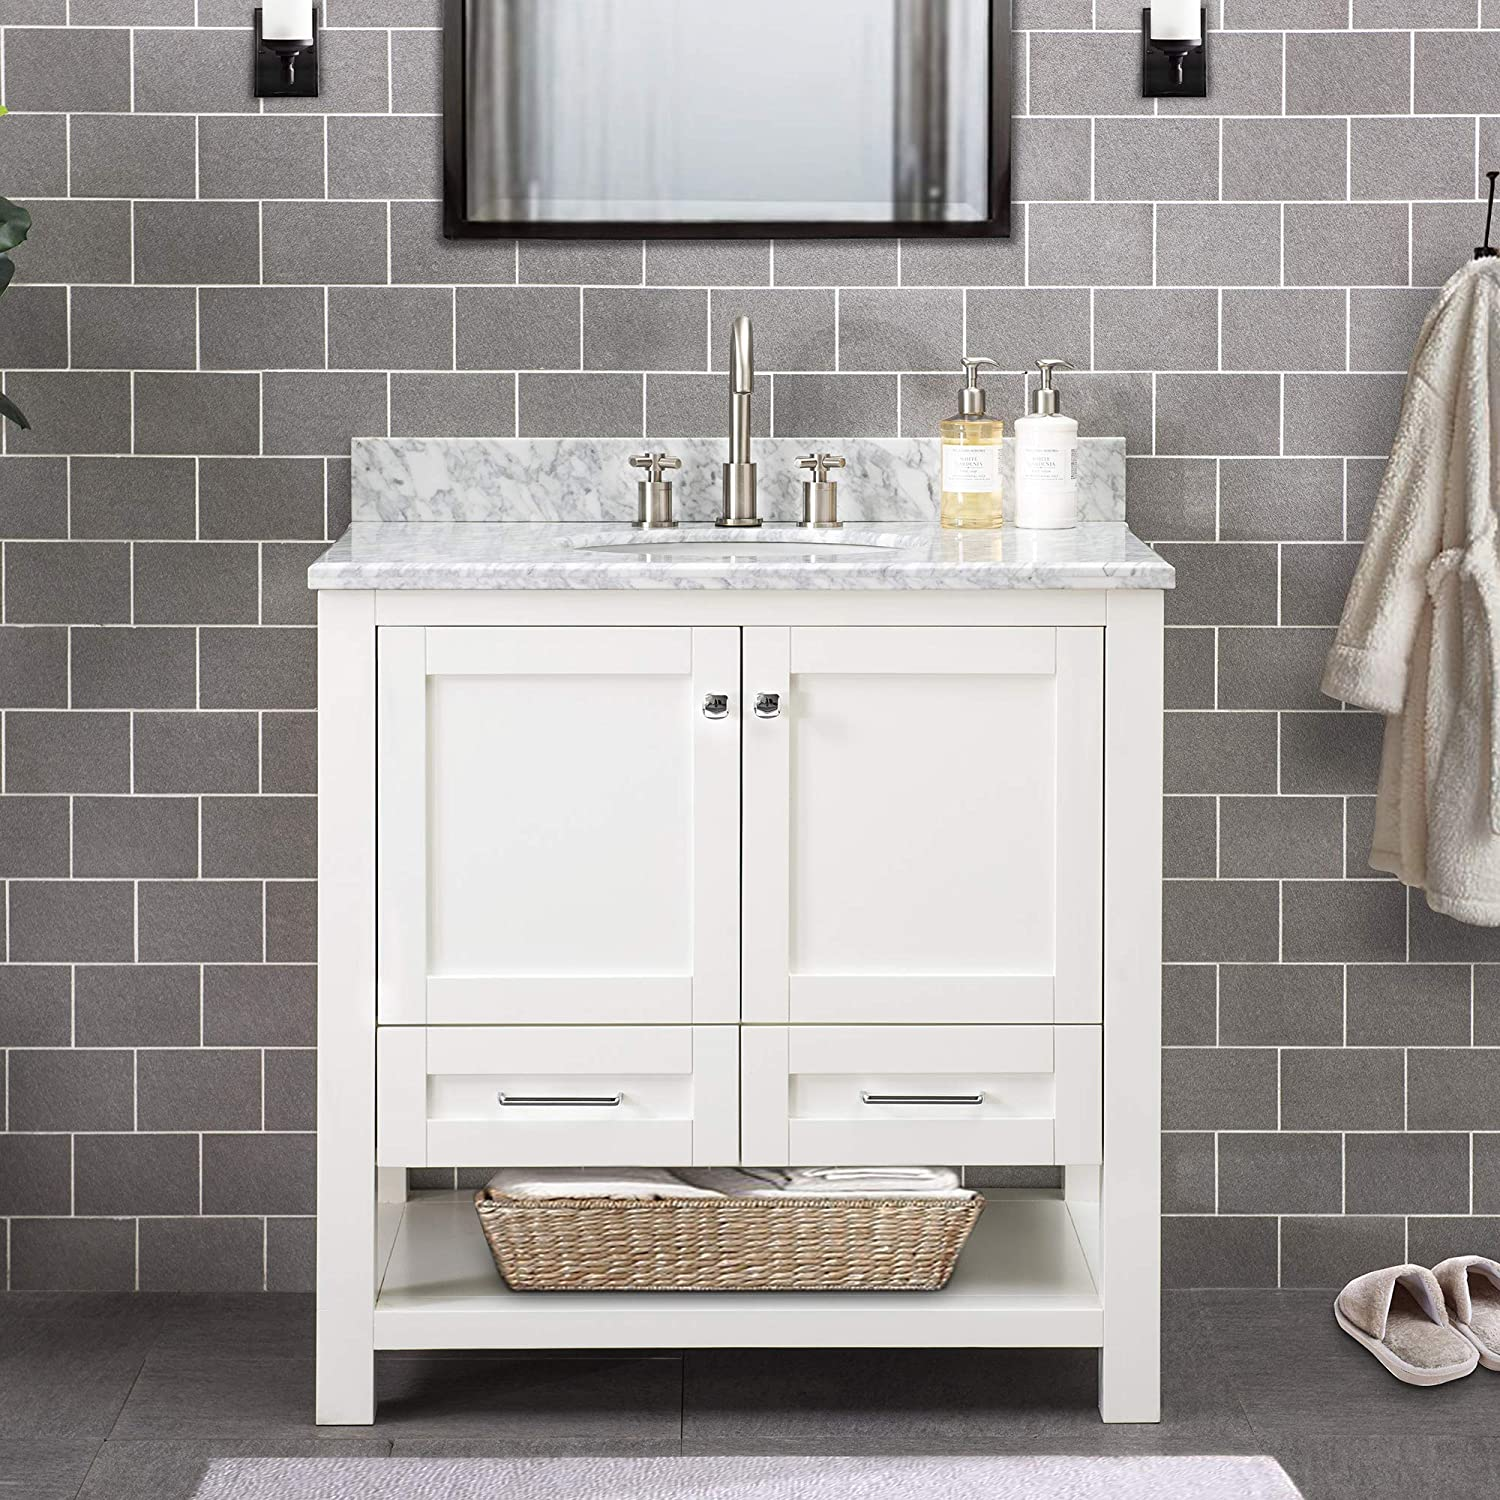 Amazon Com Sj Collection Walter 36 In Shaker Style Single Sink Bathroom Vanity White Home Kitchen